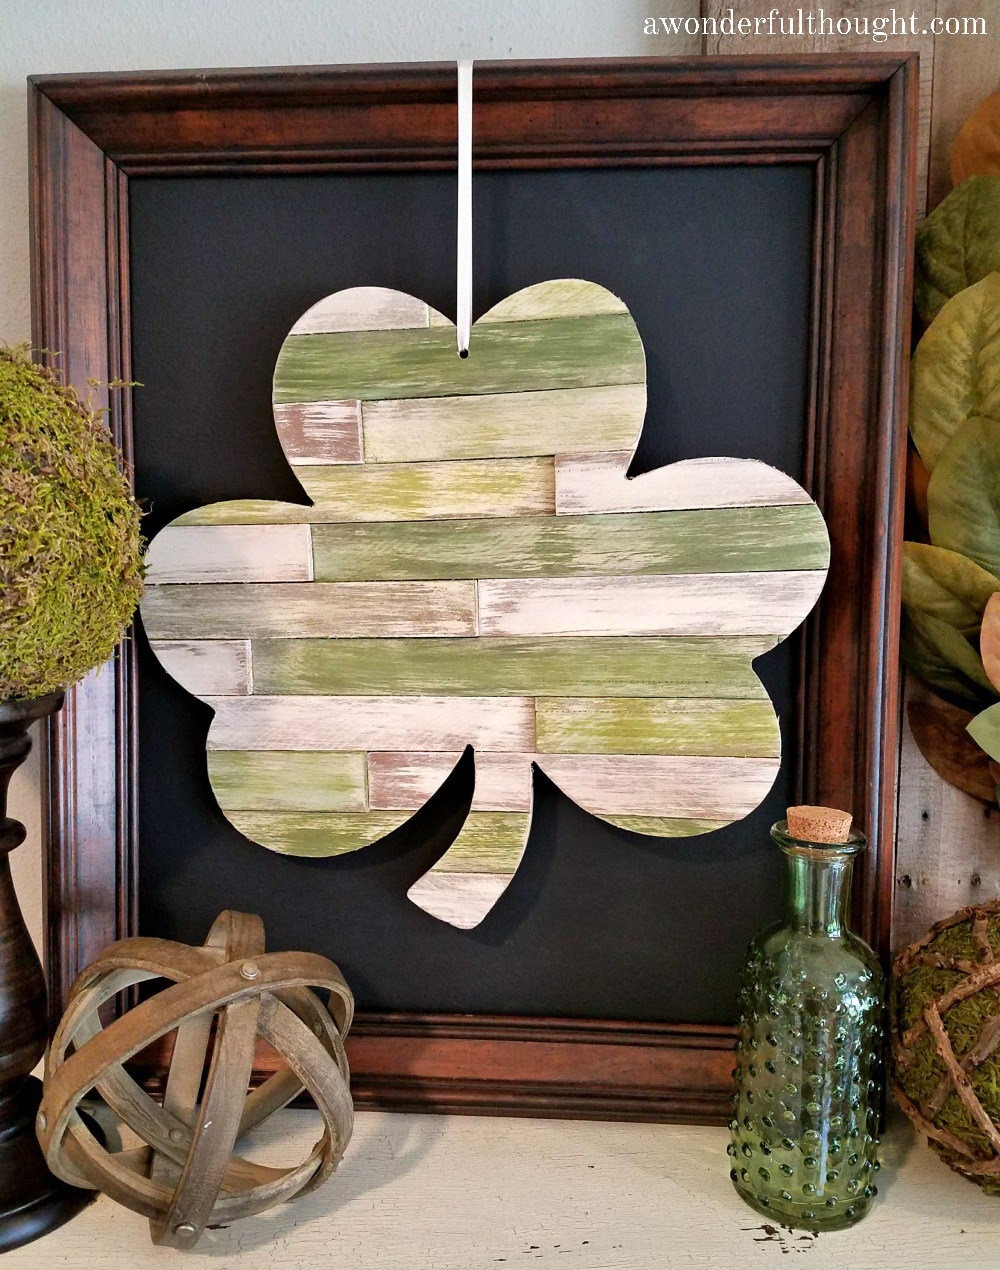 DIY Wood Shim Shamrock | A Wonderful Thought